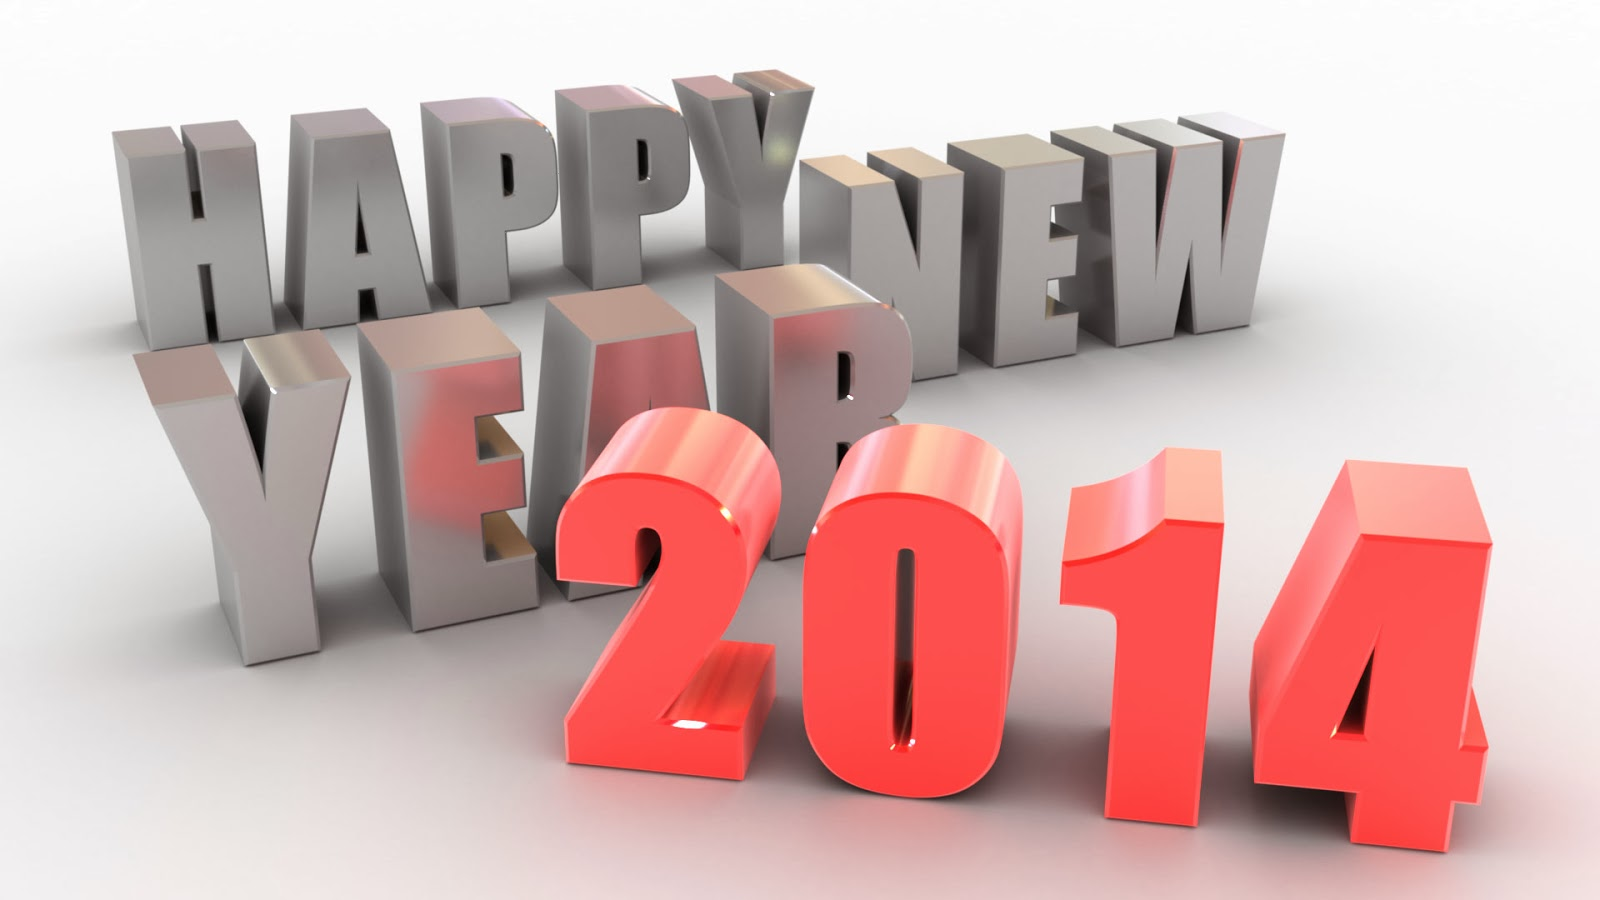 New Year clipart 2014happy Cards Year Year New Year